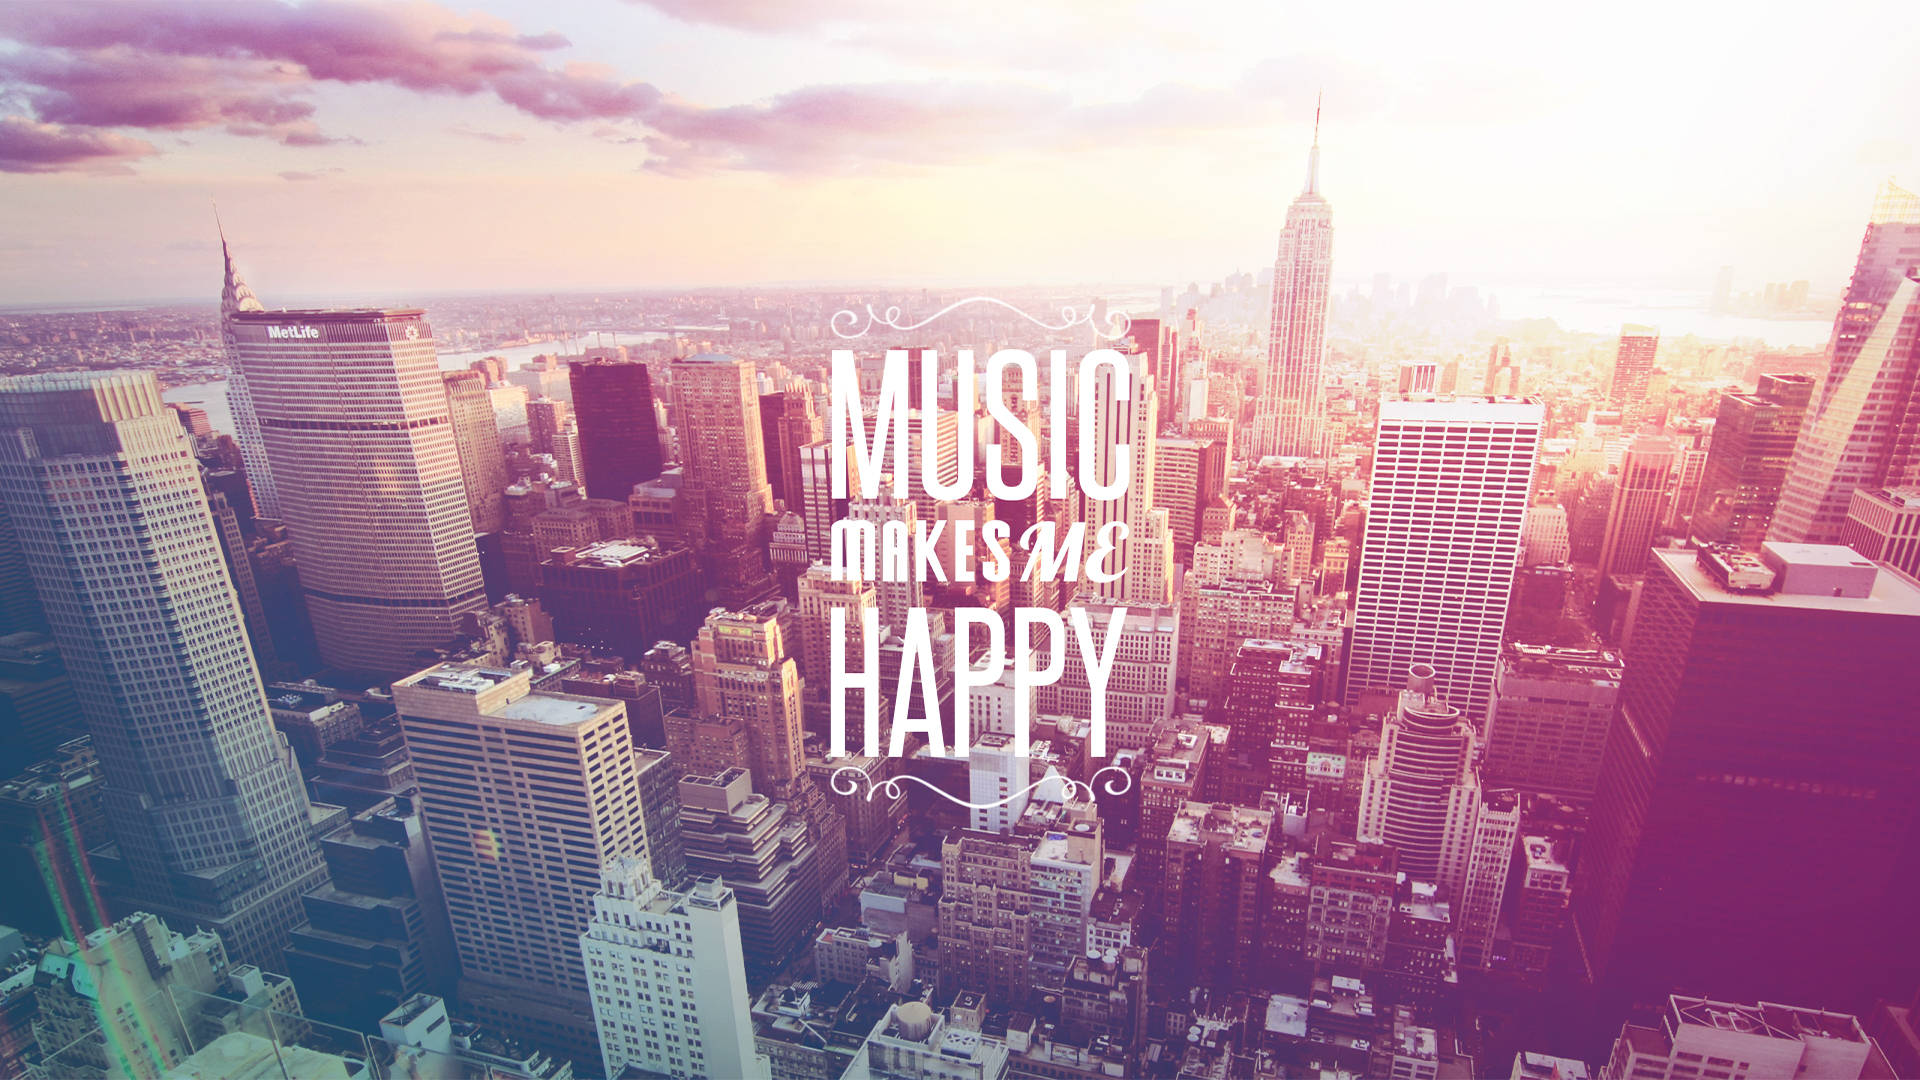 Best Music Wallpapers in High Quality Music Backgrounds 1920x1080